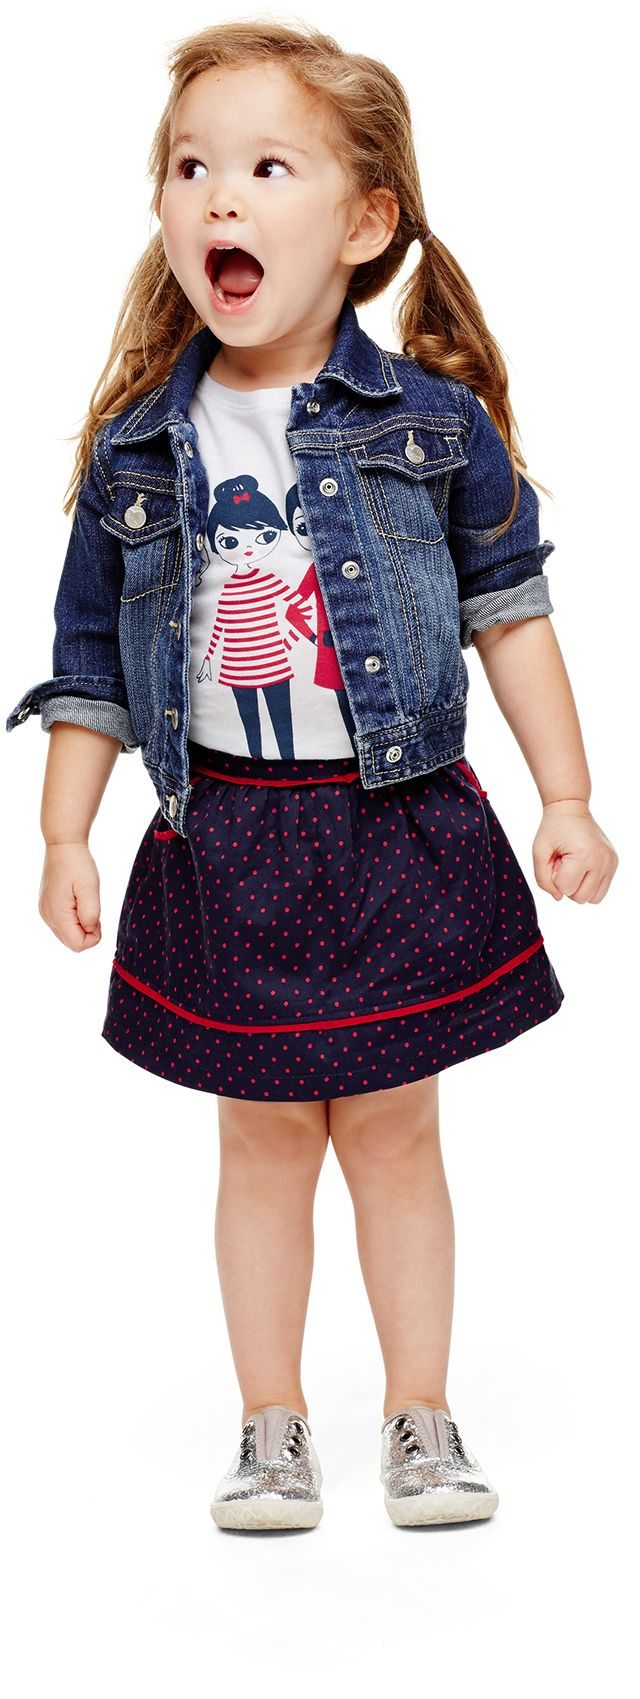 Ma matilda jane good luck trunk coupon code - New Old Navy Toddler Arrivals She Ll Be Ecstatic